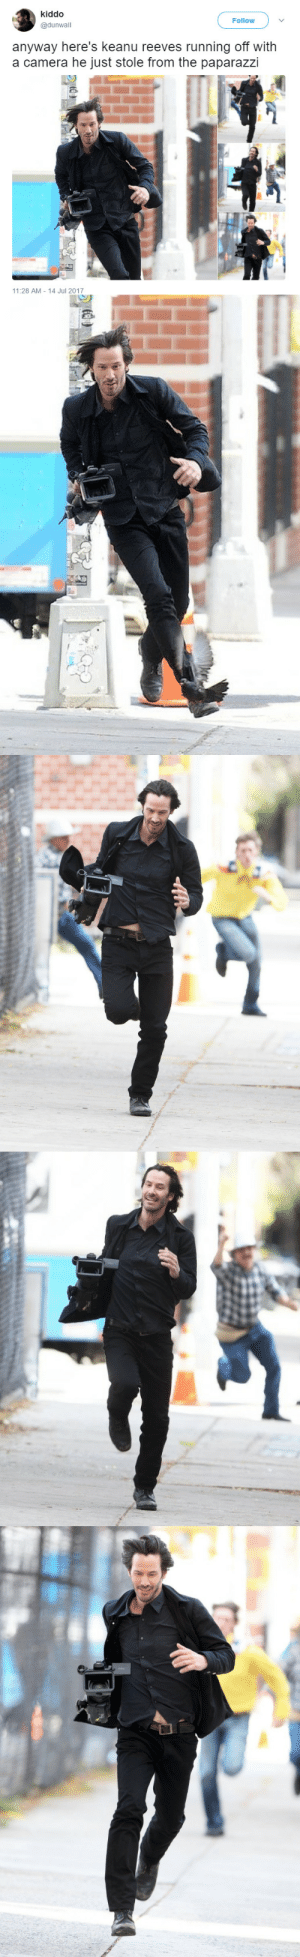 llamasgotoheaven:  thenatsdorf: Keanu Thieves (via mushroombirdornaments)  I love this man : kiddo  @dunwall  Follow  anyway here's keanu reeves running off with  a camera he just stole from the paparazzi  11:28 AM 14 Jul 2017 llamasgotoheaven:  thenatsdorf: Keanu Thieves (via mushroombirdornaments)  I love this man